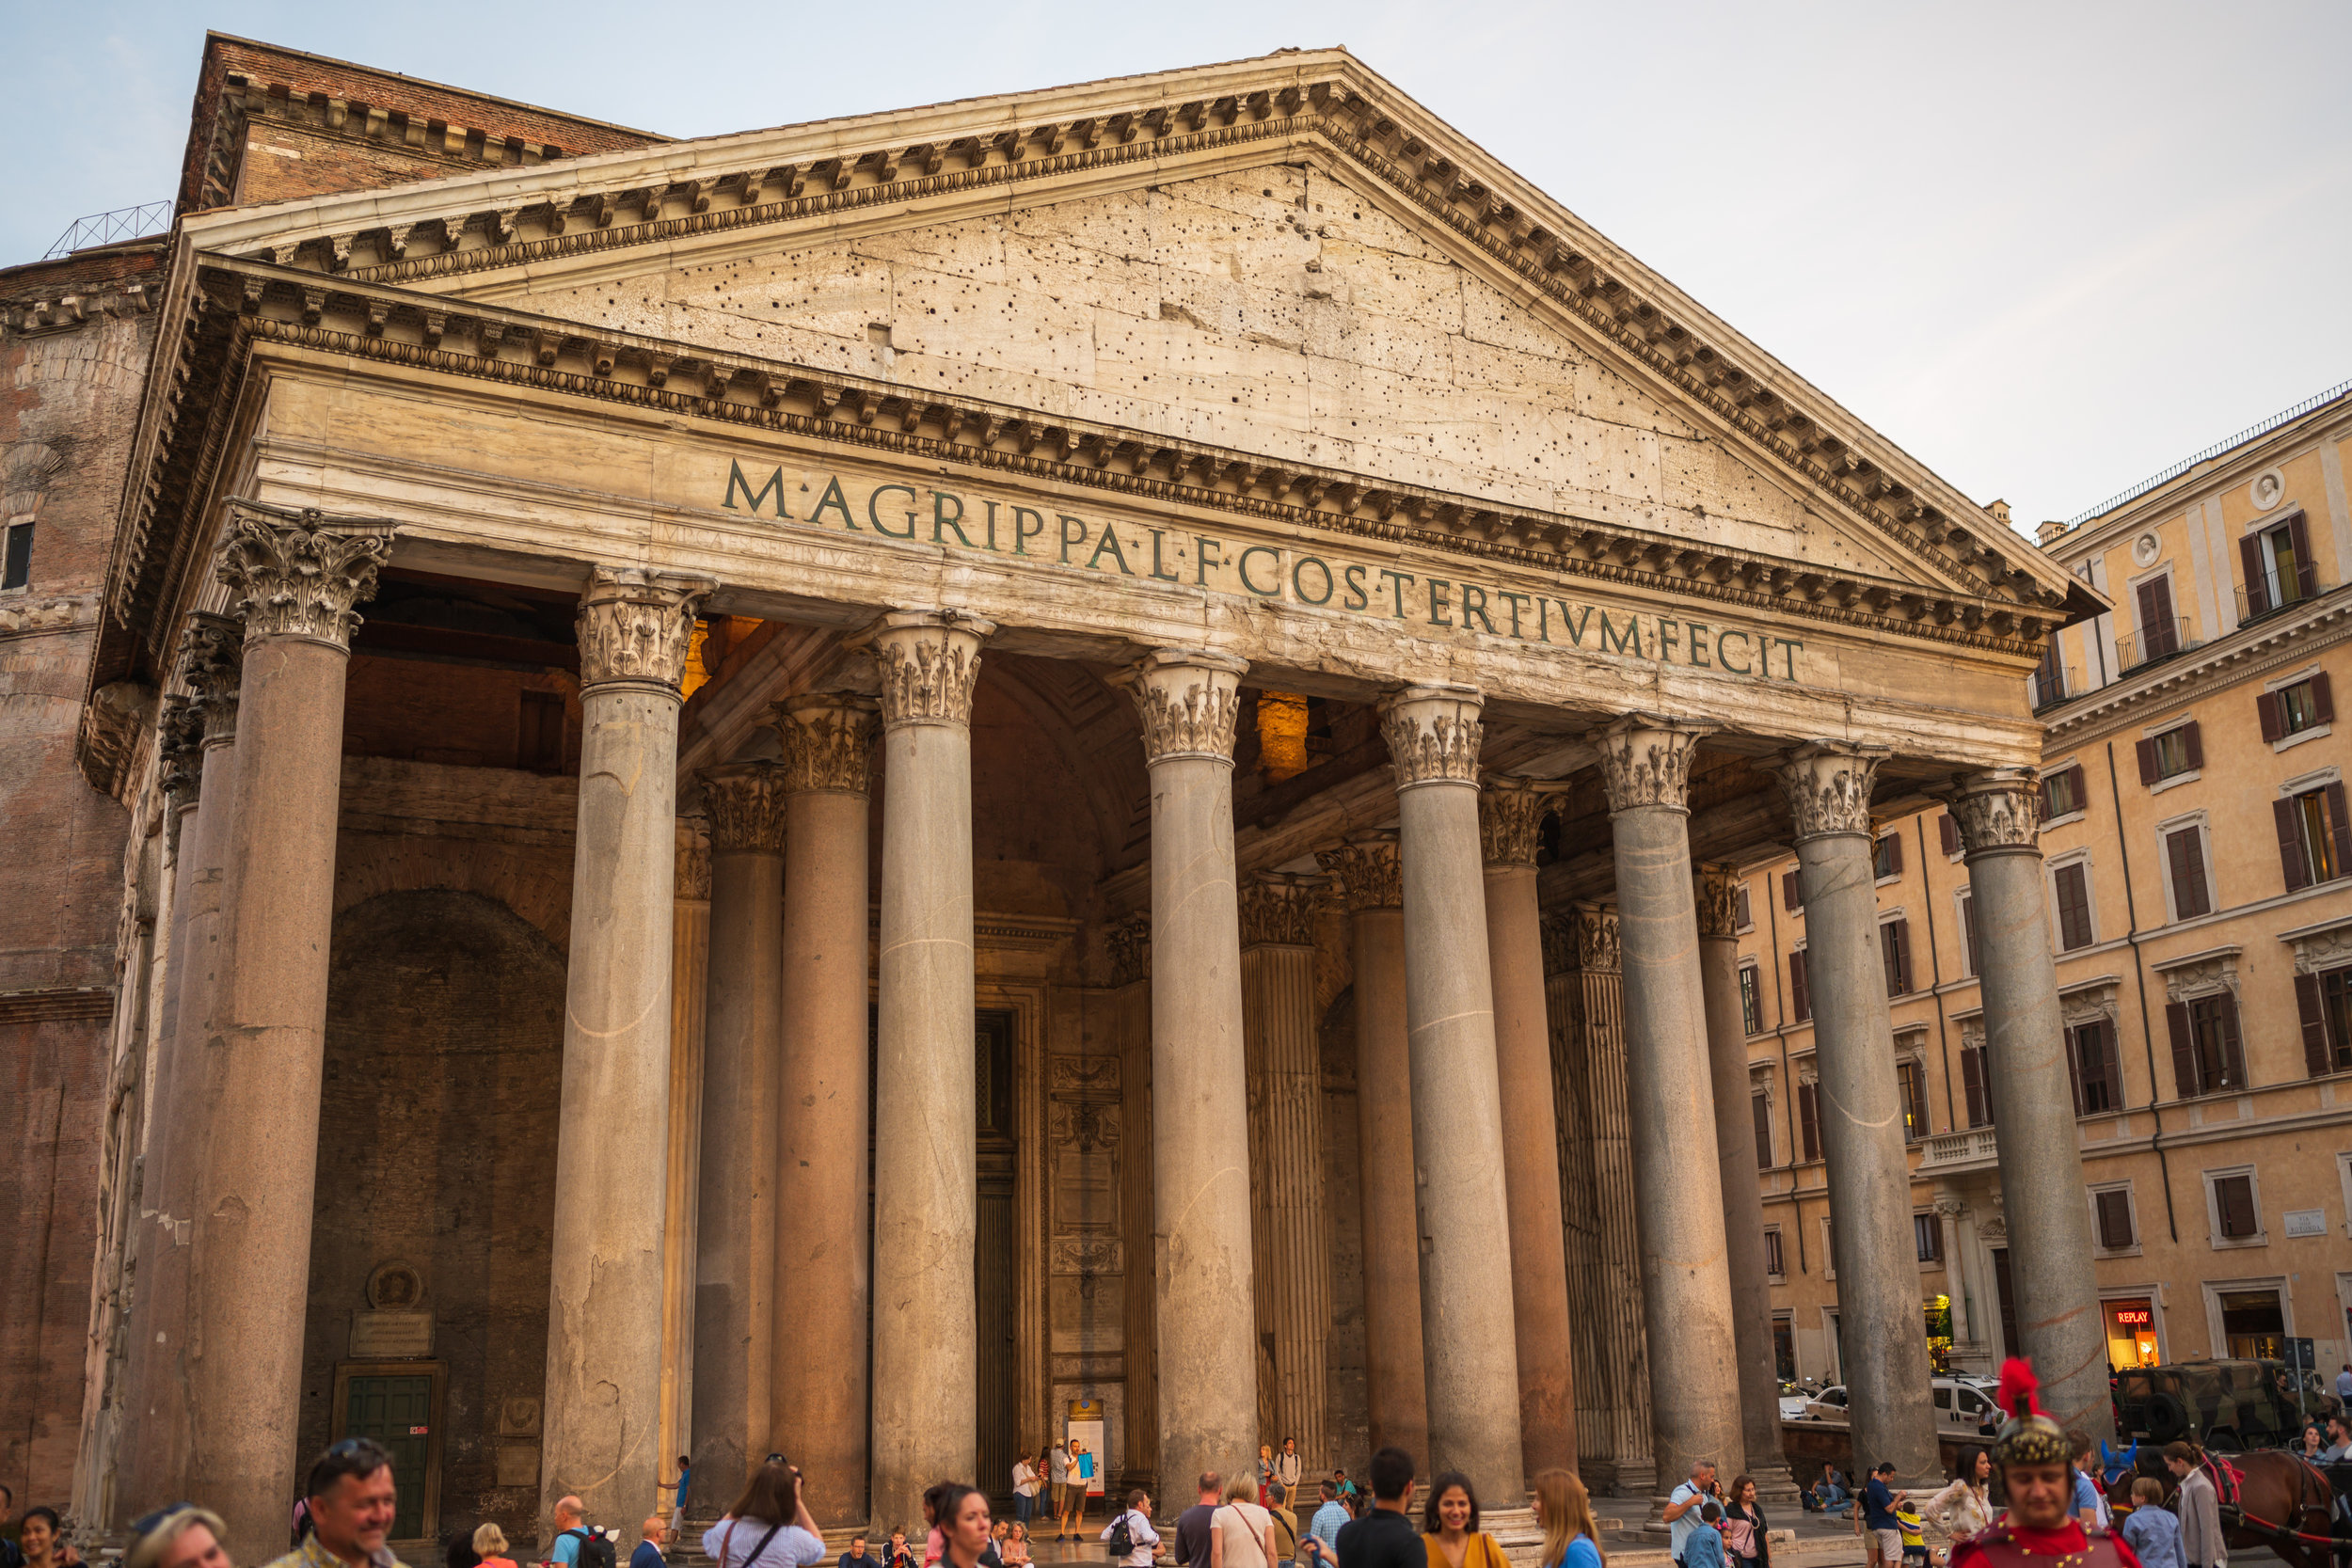 The magnificent Pantheon.